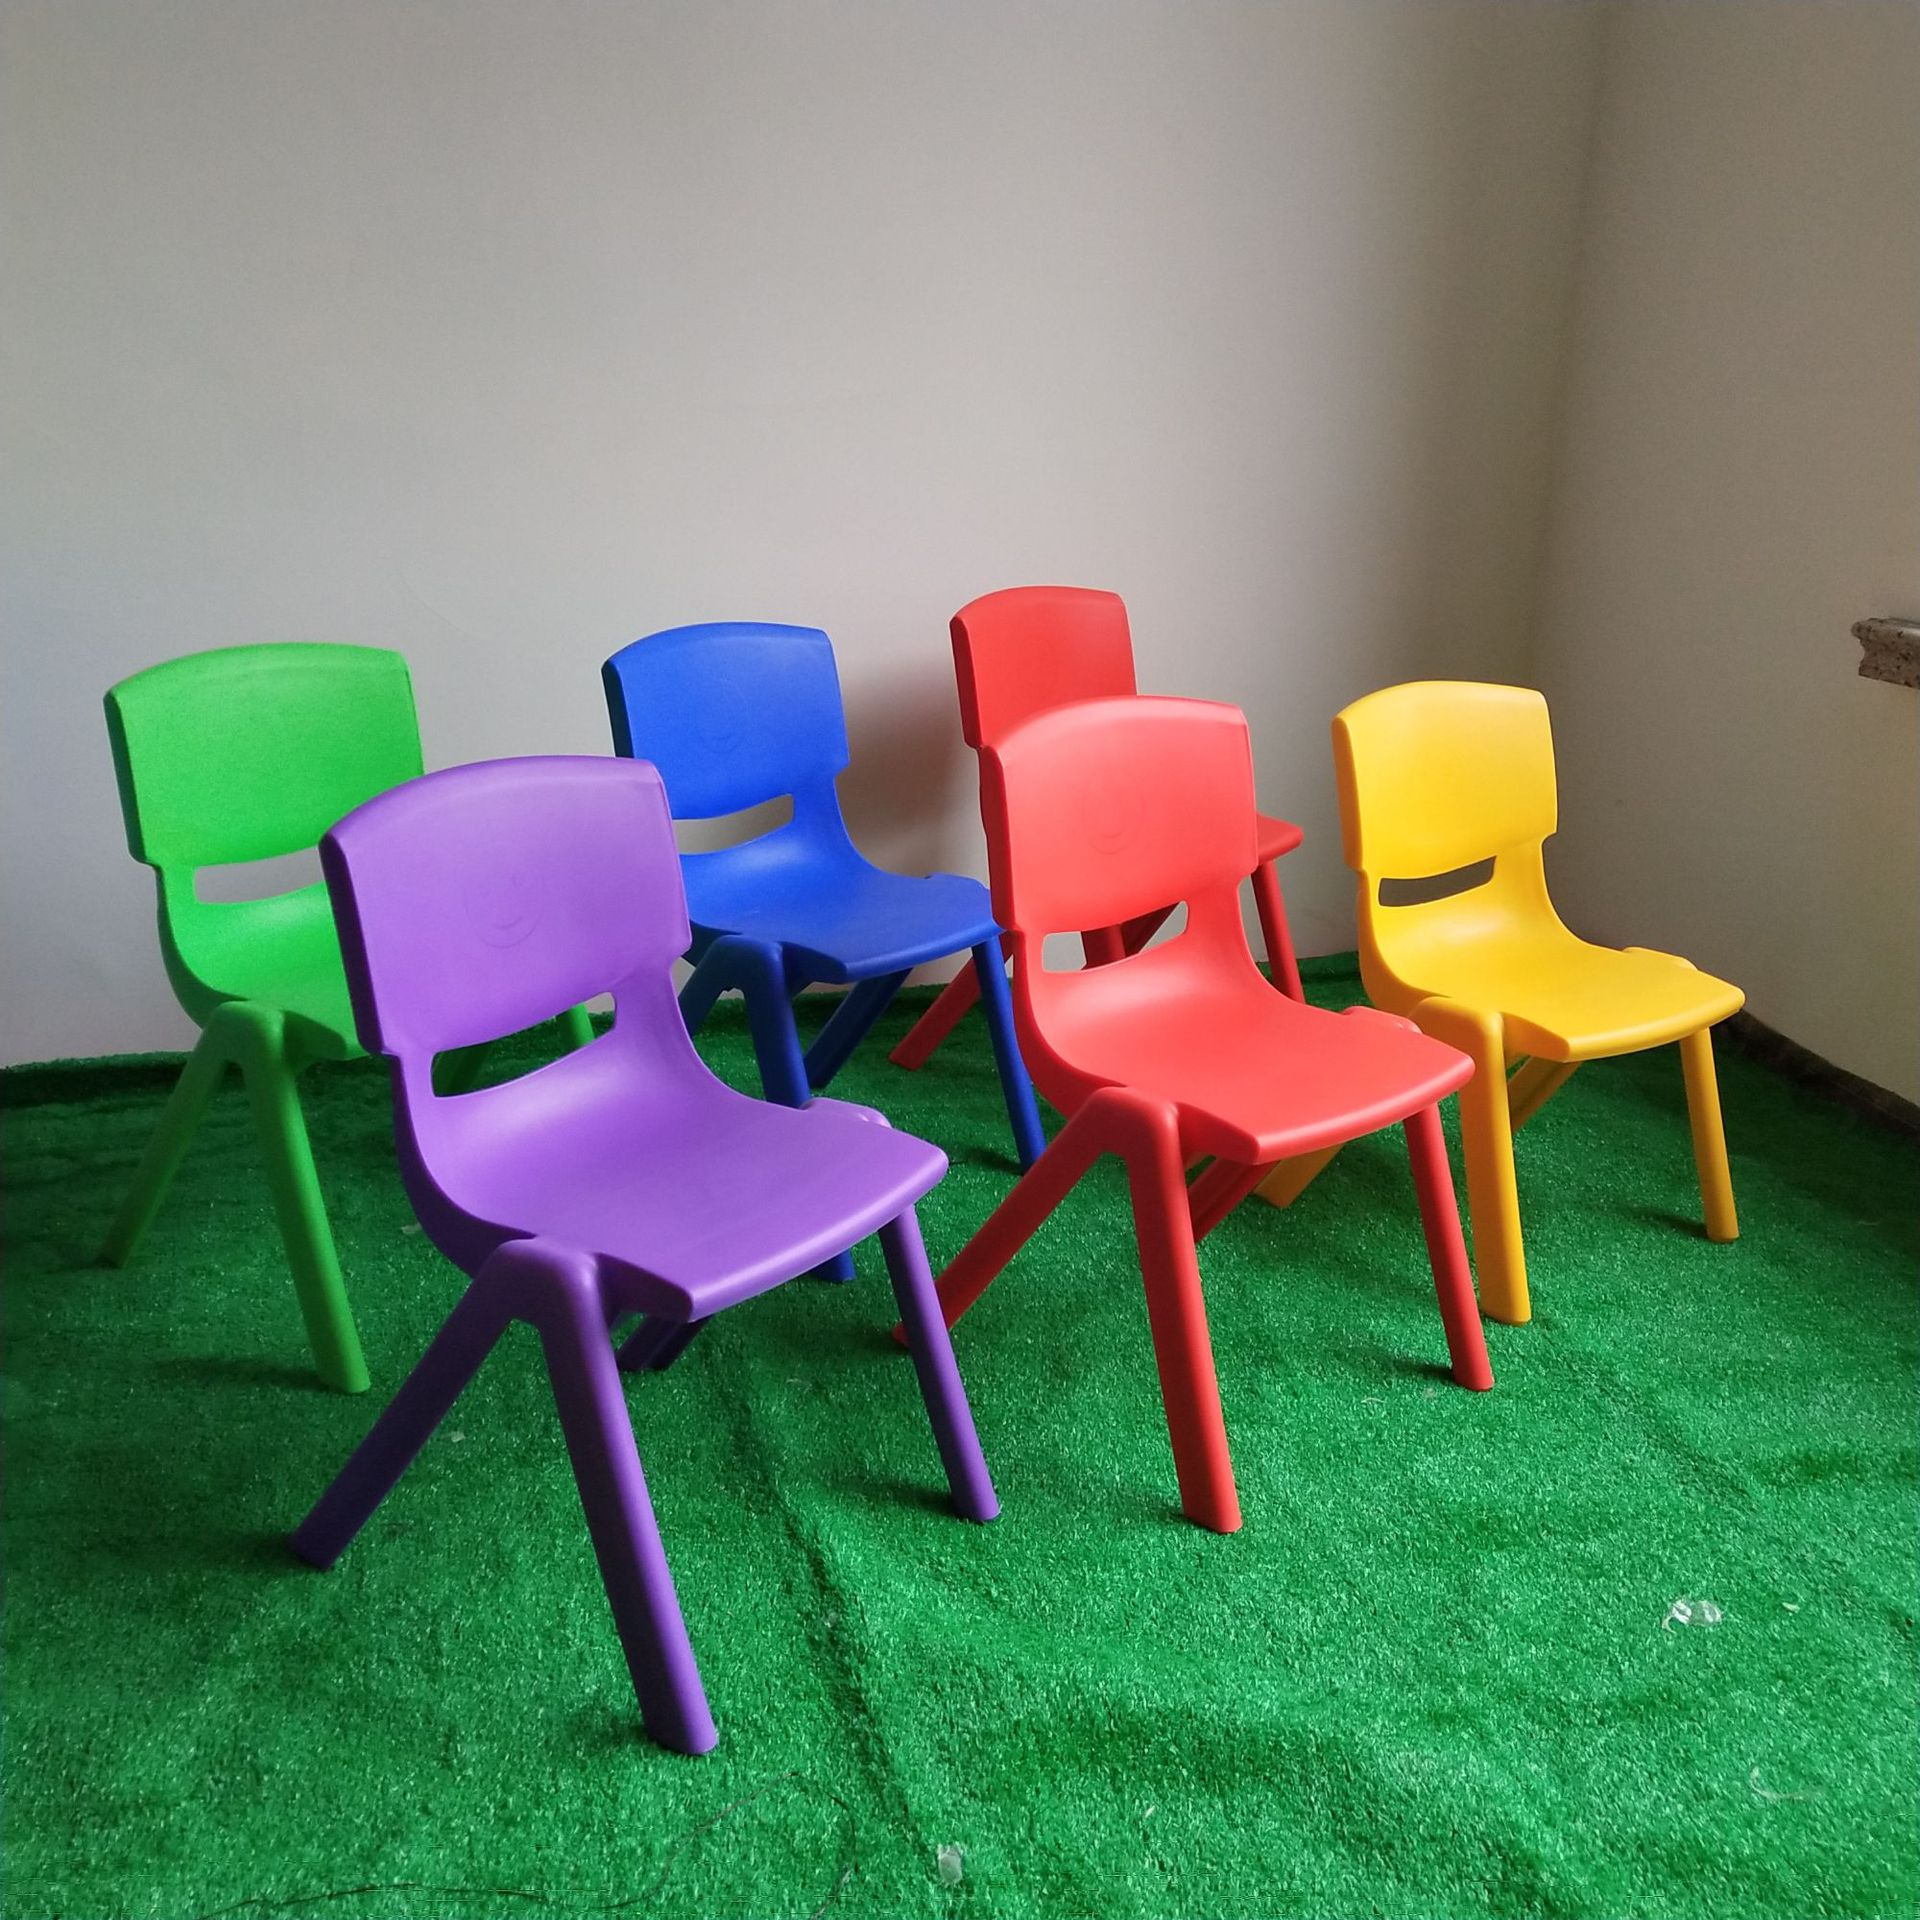 Backrest:  Colorful cute chair children's tables and chairs plastic backrest small chair thickened scrub children furniture - Martin's & Co